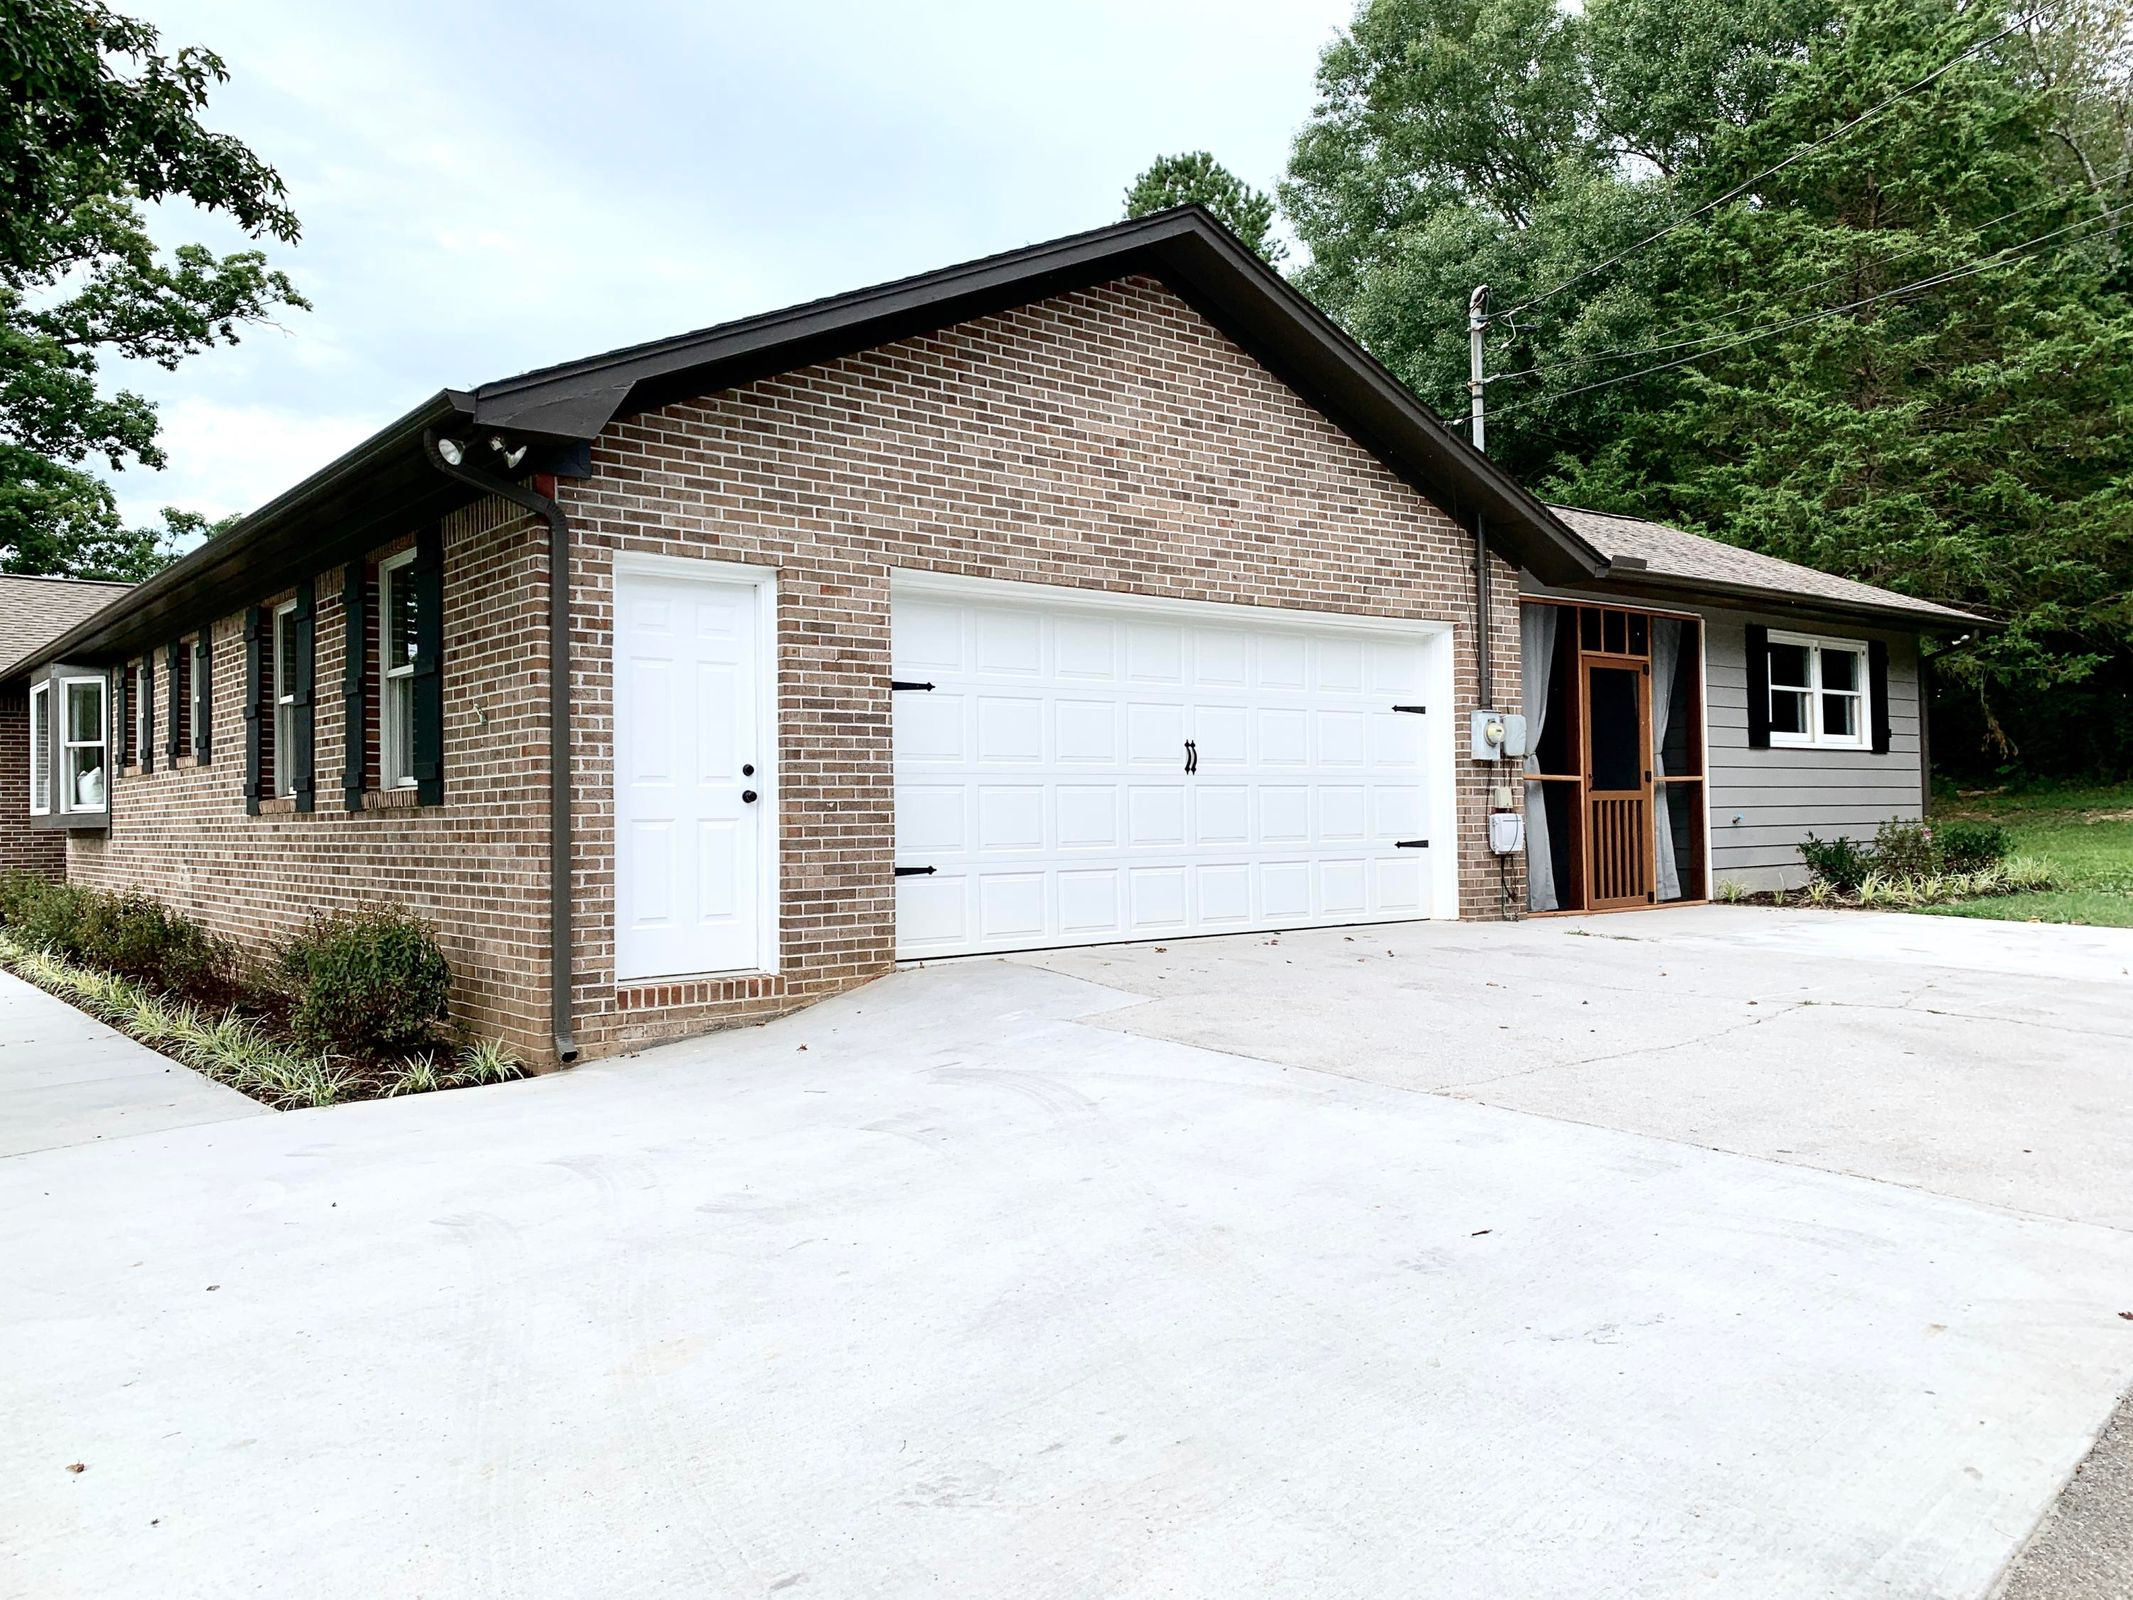 2 car garage with extra driveway